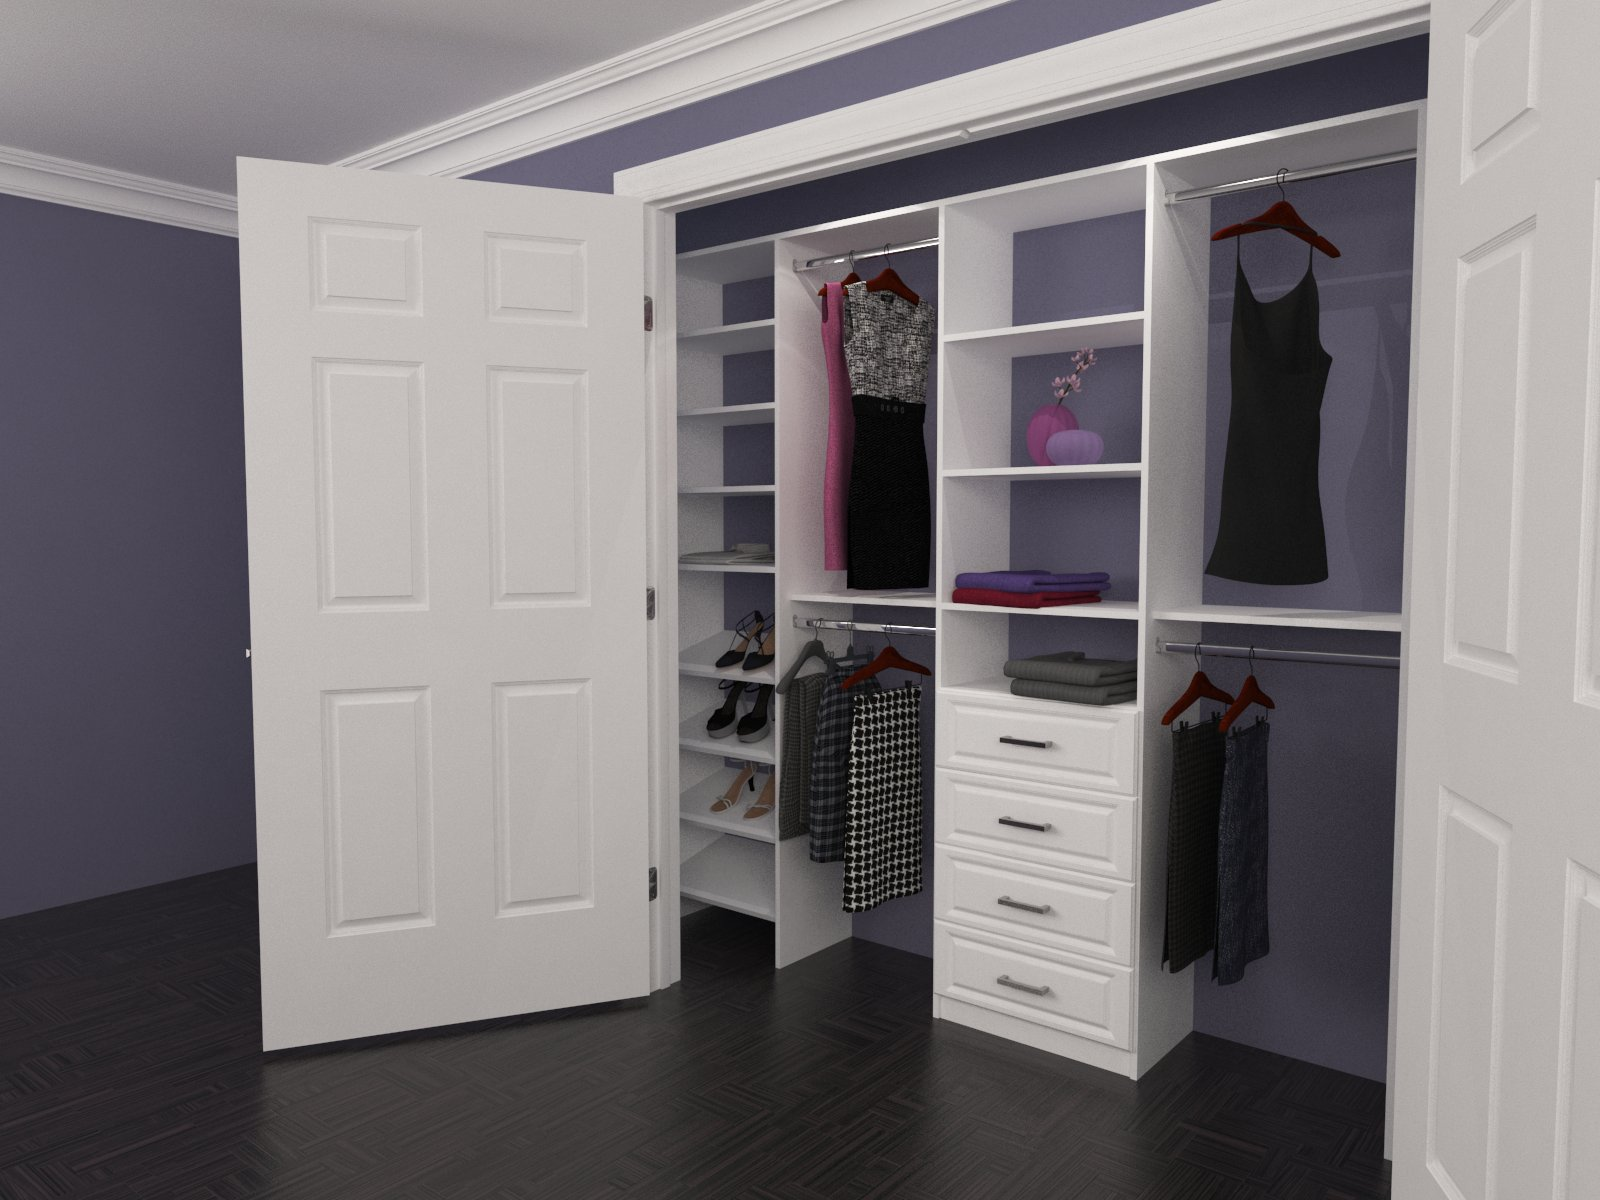 custom closet organizers inc custom closets toronto custom closet organizers inc custom. Black Bedroom Furniture Sets. Home Design Ideas